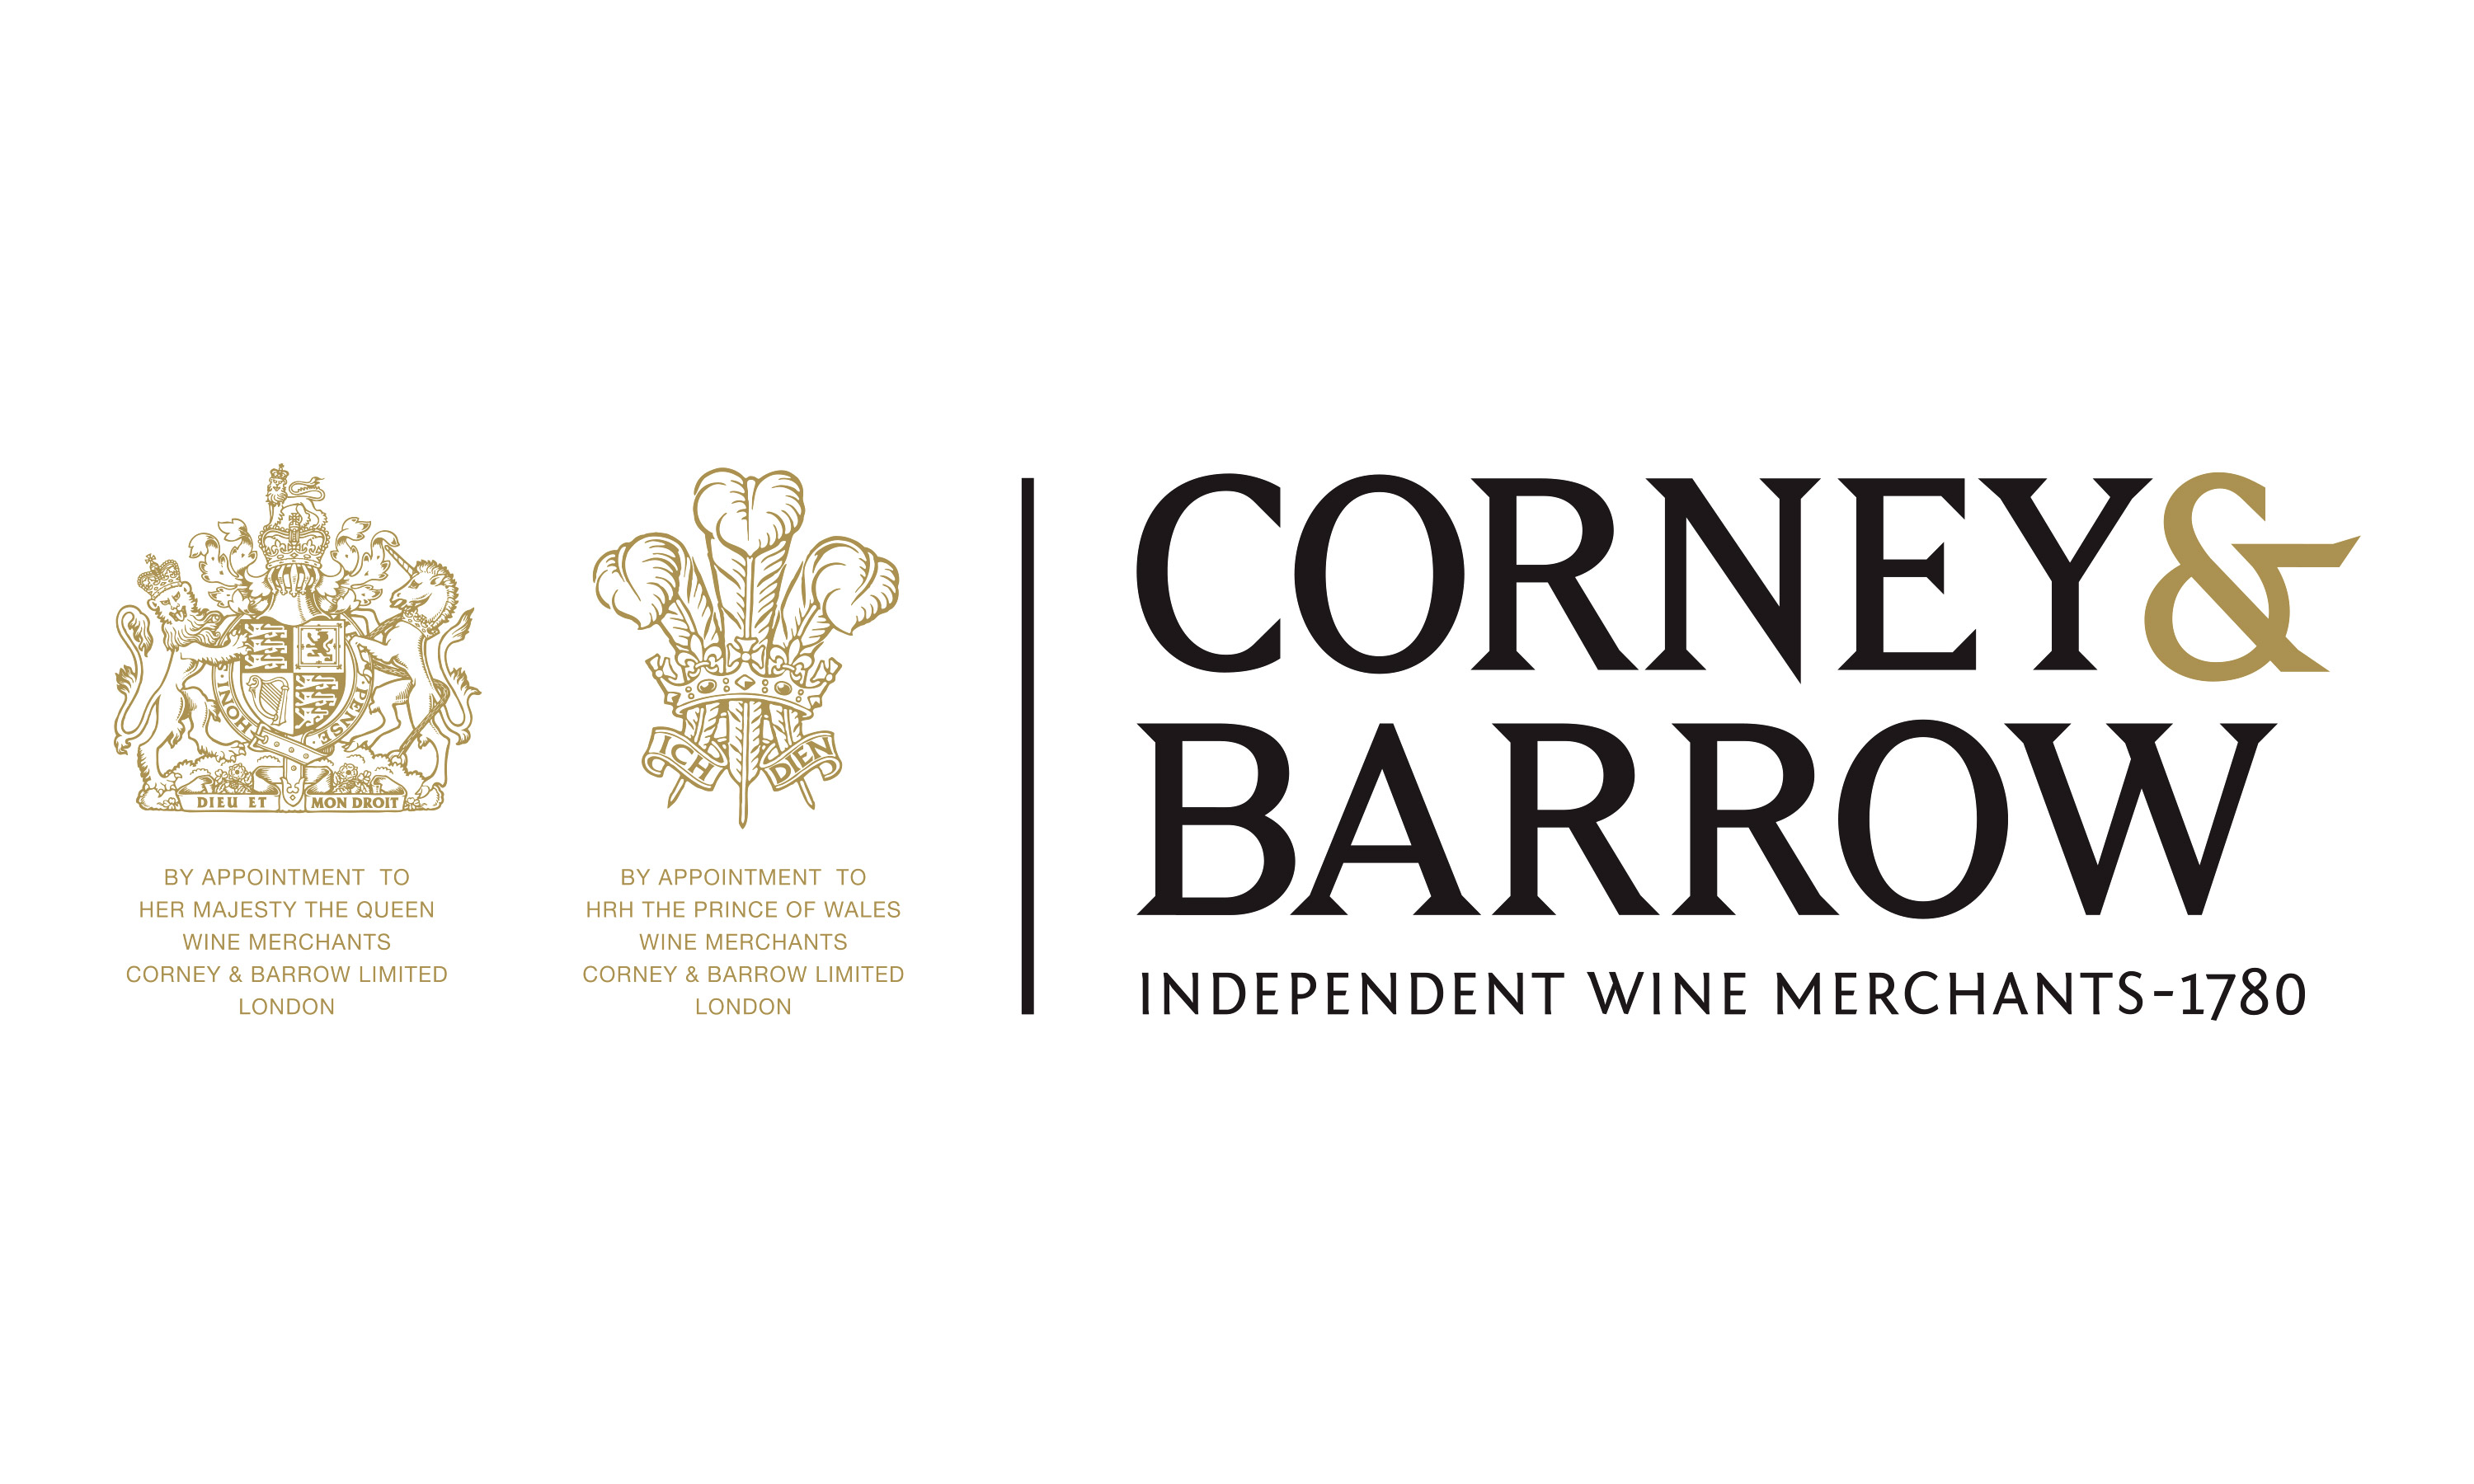 By Dana Robertson Creative Director and Founder of Neon. The new re-crafted by Neon Corney & Barrow brand mark with Royal Warrants, part of the Corney & Barrow brand identity and visual language refresh designed to help position Corney & Barrow as the leading UK and international premium independent Wine Merchants. Idea, art direction and design by Neon Design & Branding Consultancy www.neon-creative.com